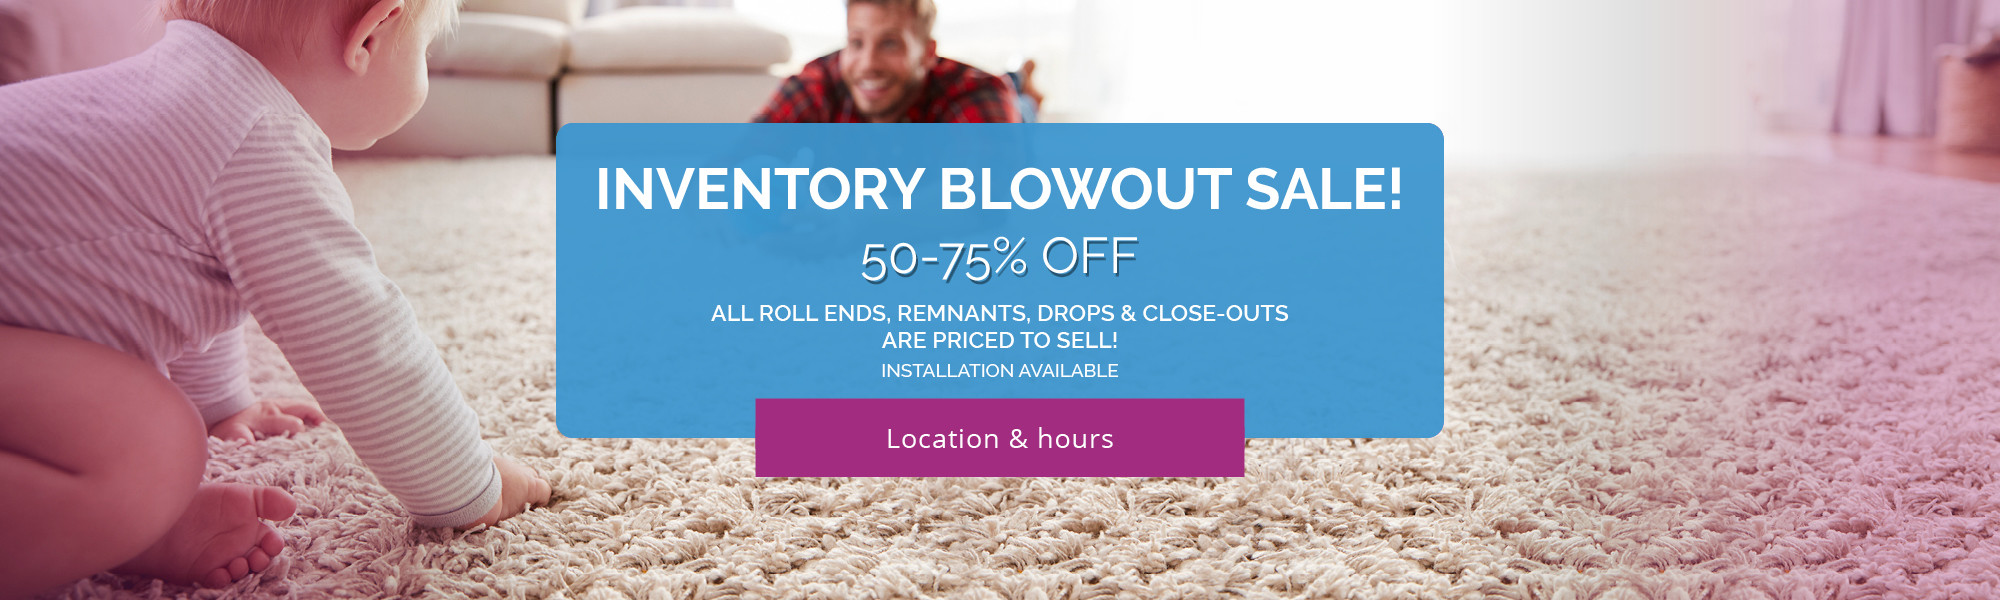 Carpets Galore Flooring Warehouse Inventory Blowout Sale! 50-75% OFF all roll-ends, remnants, drops & close-outs are PRICED TO SELL! INSTALLATION AVAILABLE!